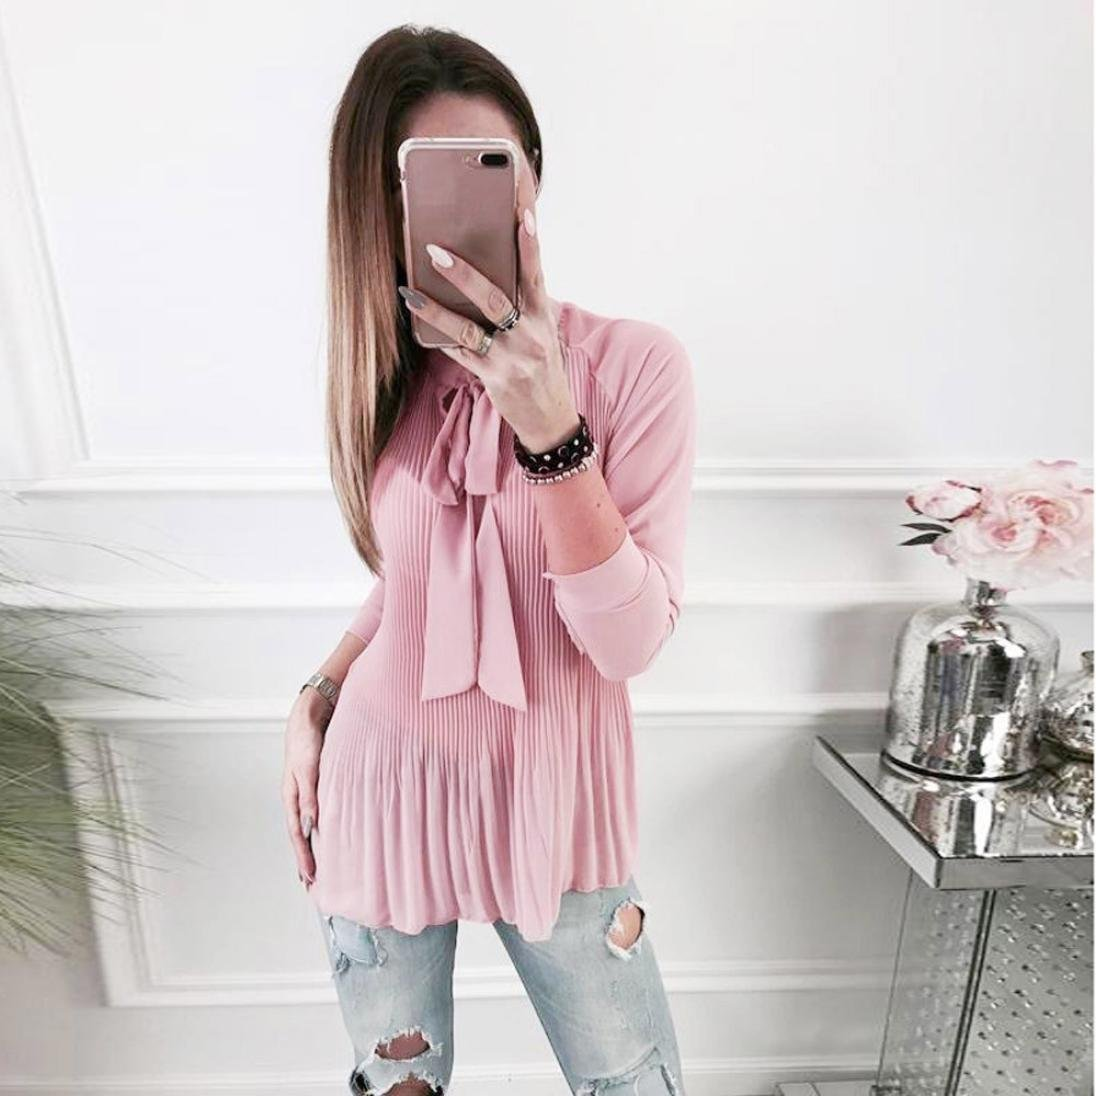 248463fb301 Women New Clothes HOSOME Women Casual Cap Sleeve Bow Tie T-Shirt Solid  Chiffon Blouse Tops ...